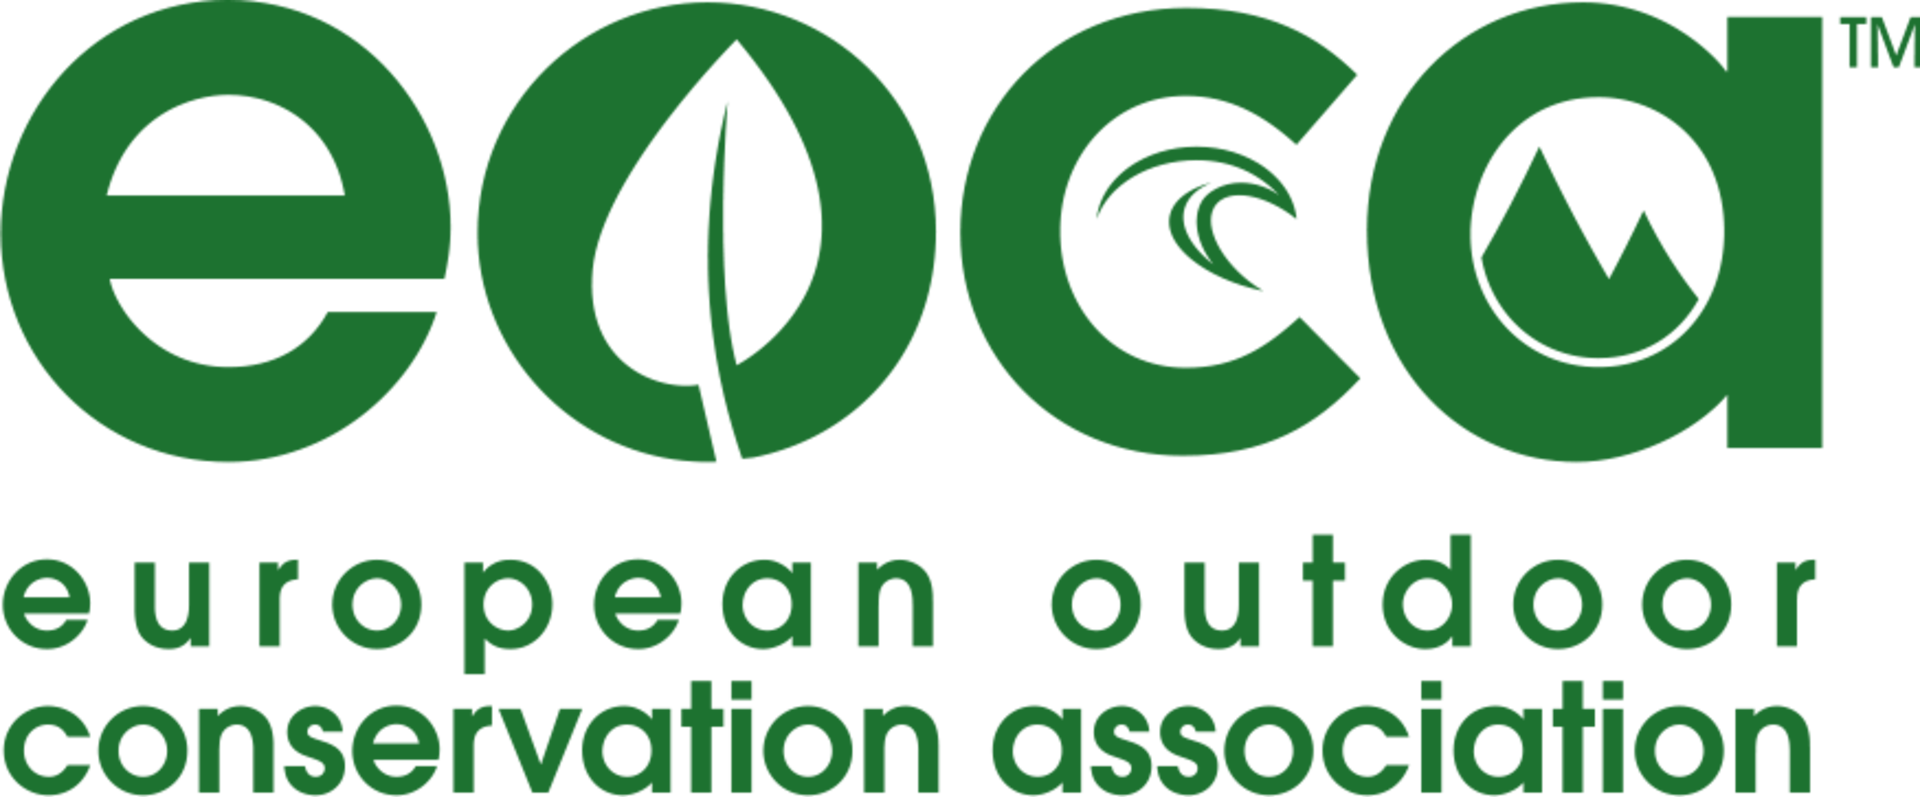 eoca_member_green_clipping